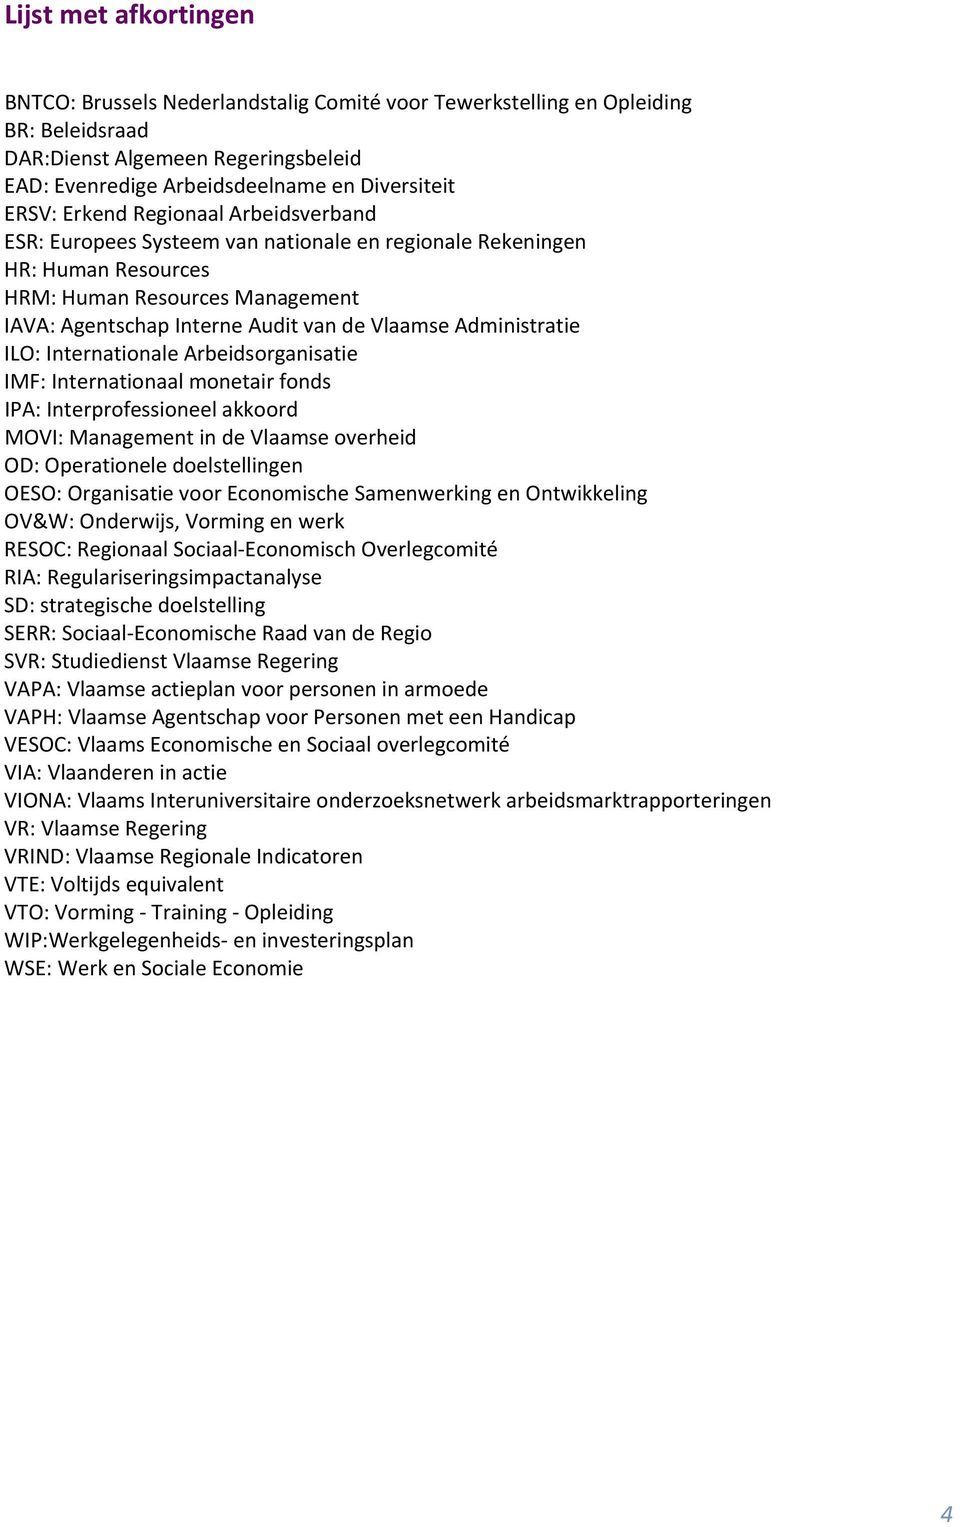 Administratie ILO: Internationale Arbeidsorganisatie IMF: Internationaal monetair fonds IPA: Interprofessioneel akkoord MOVI: Management in de Vlaamse overheid OD: Operationele doelstellingen OESO: